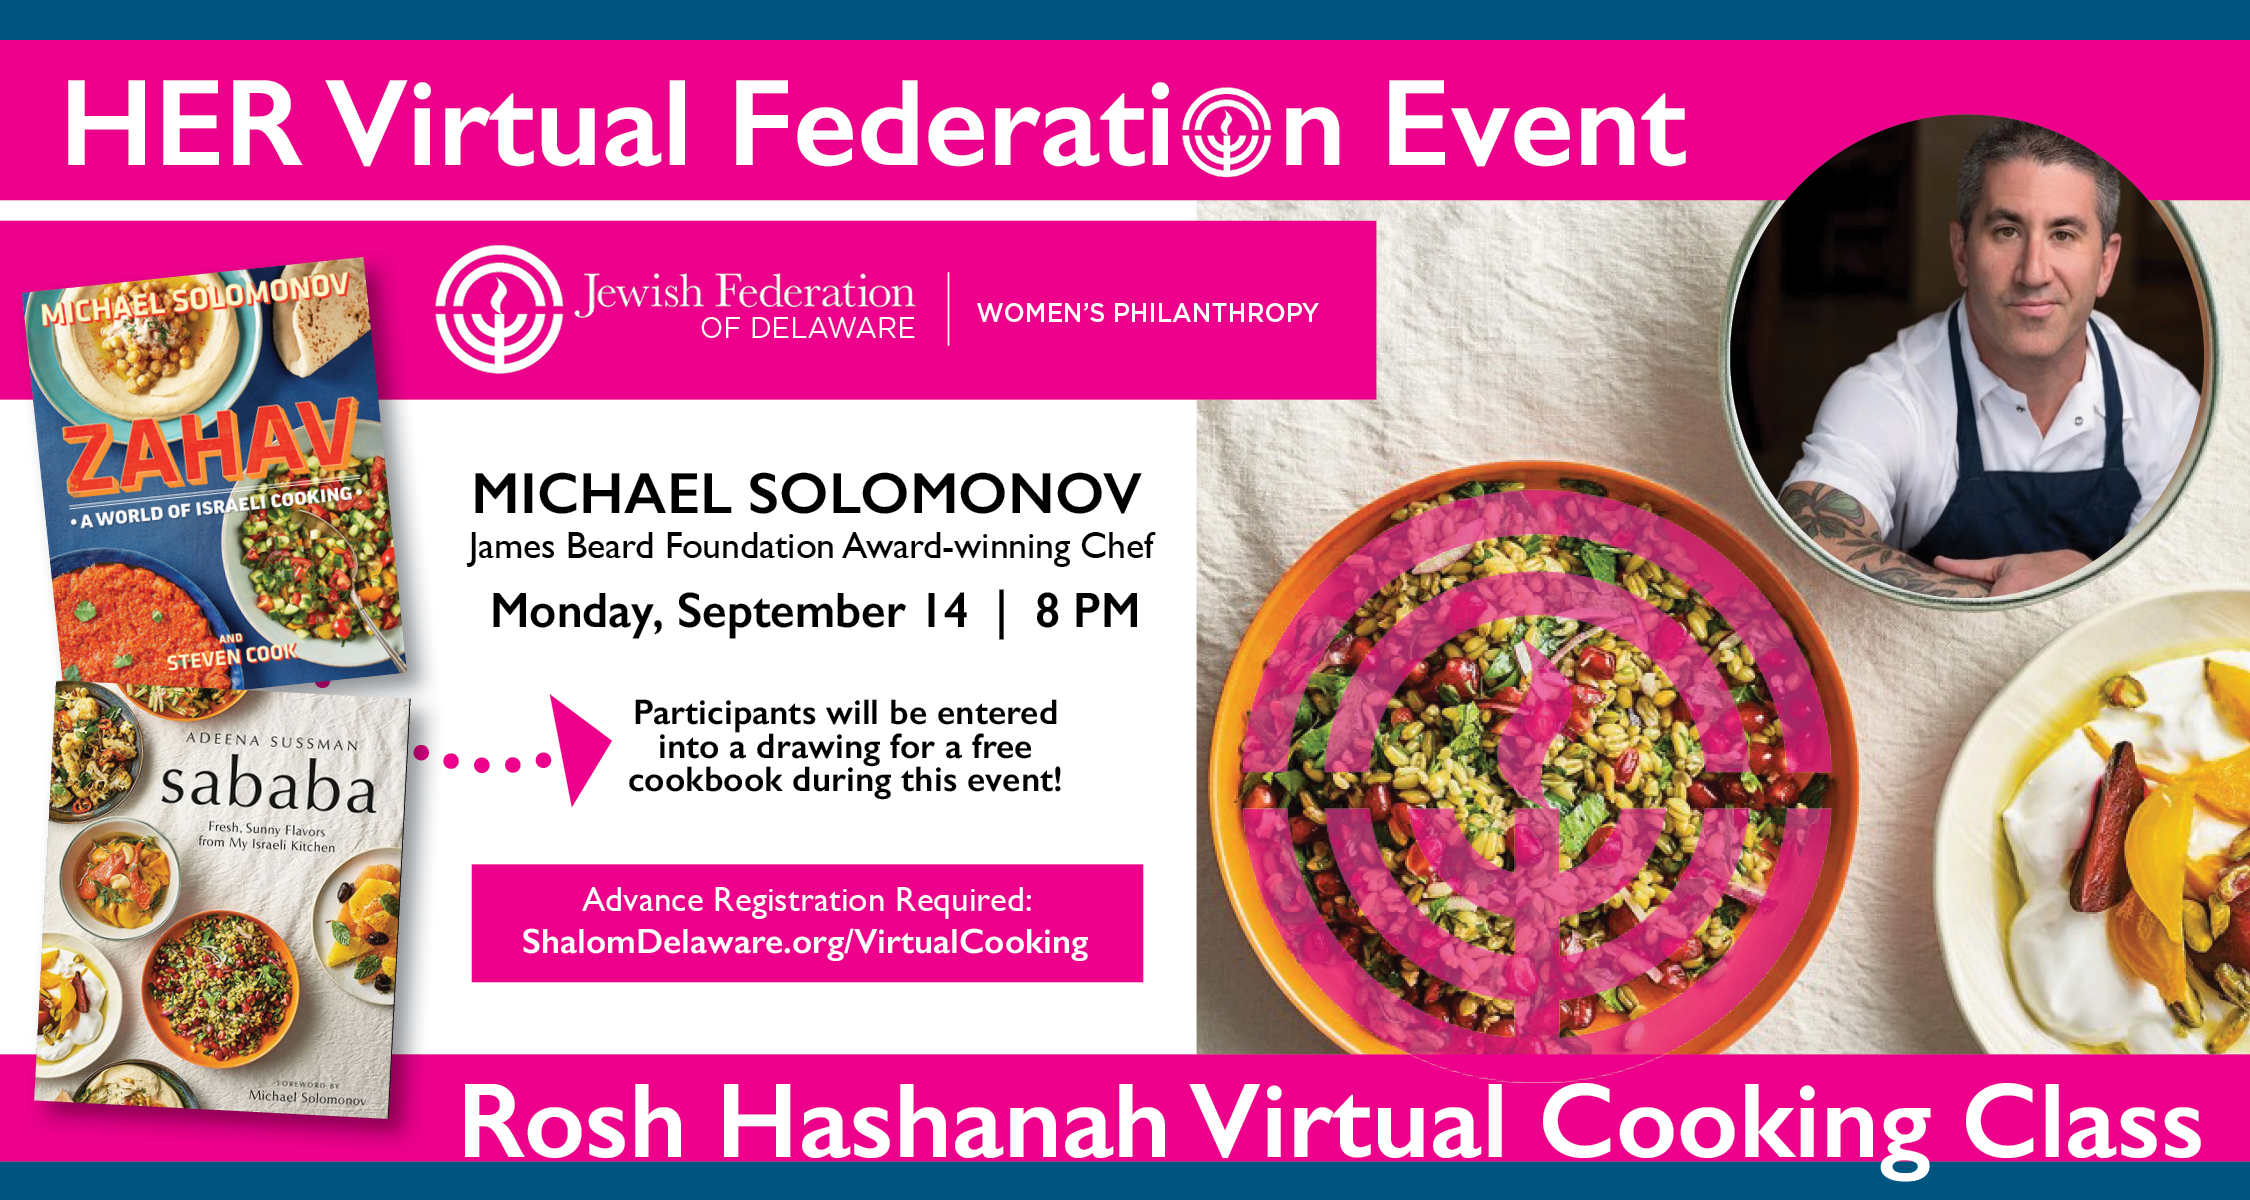 Rosh Hashanah Virtual Cooking Event